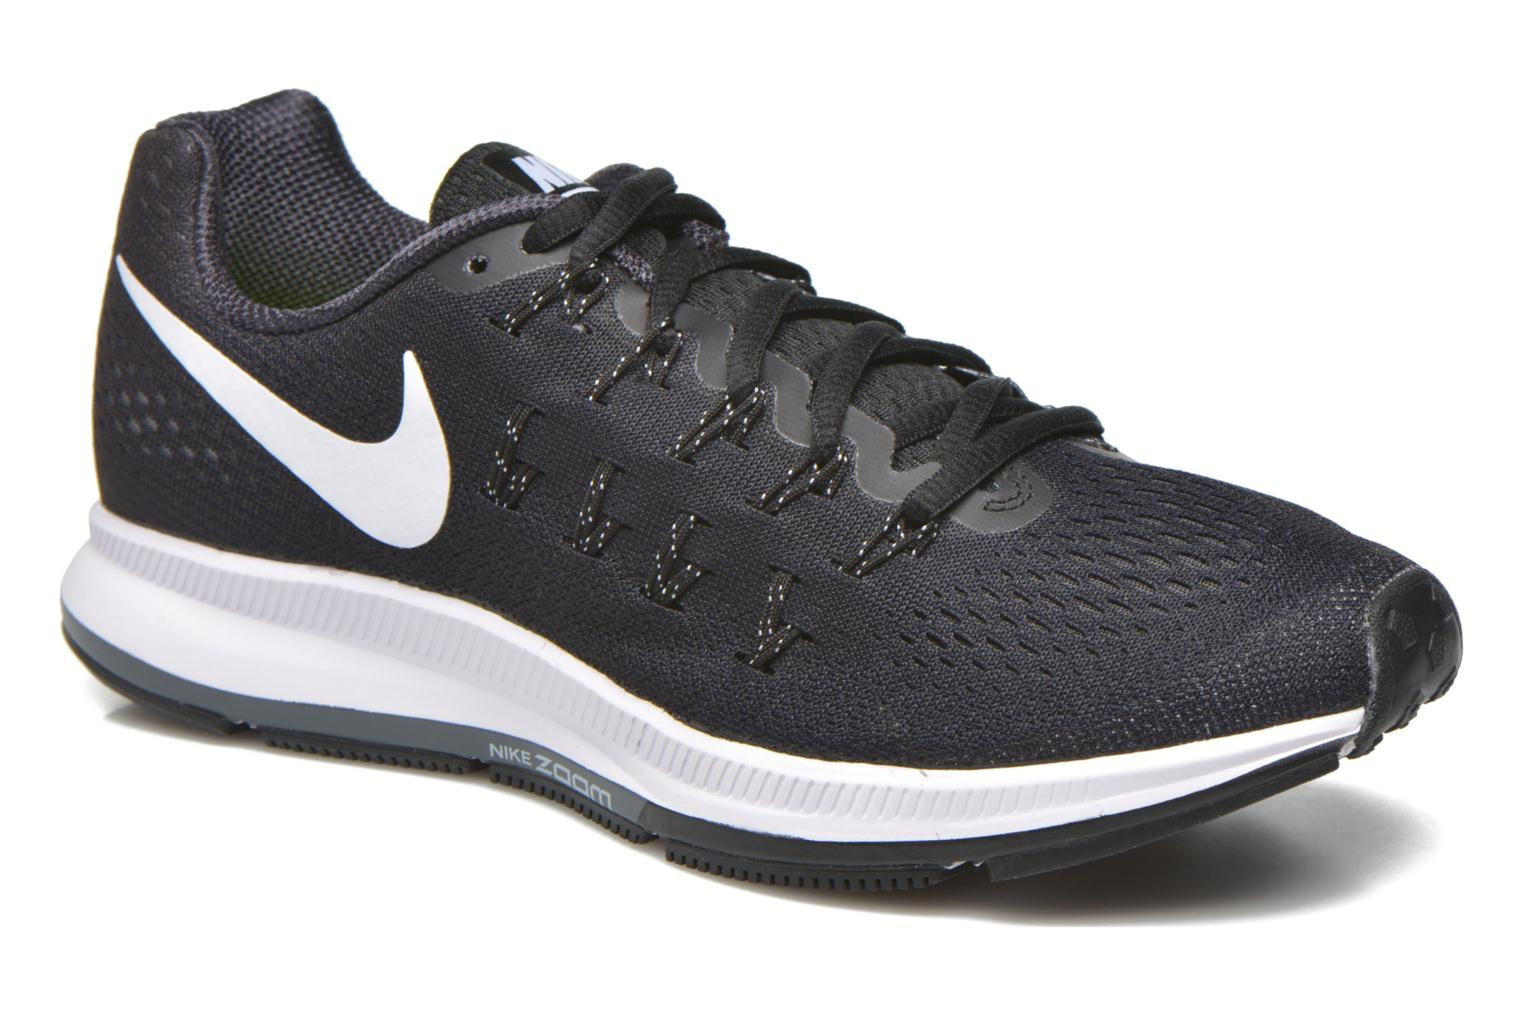 Wmns Nike Air Zoom Pegasus 33 BLACK/WHITE-ANTHRACITE-CL GREY